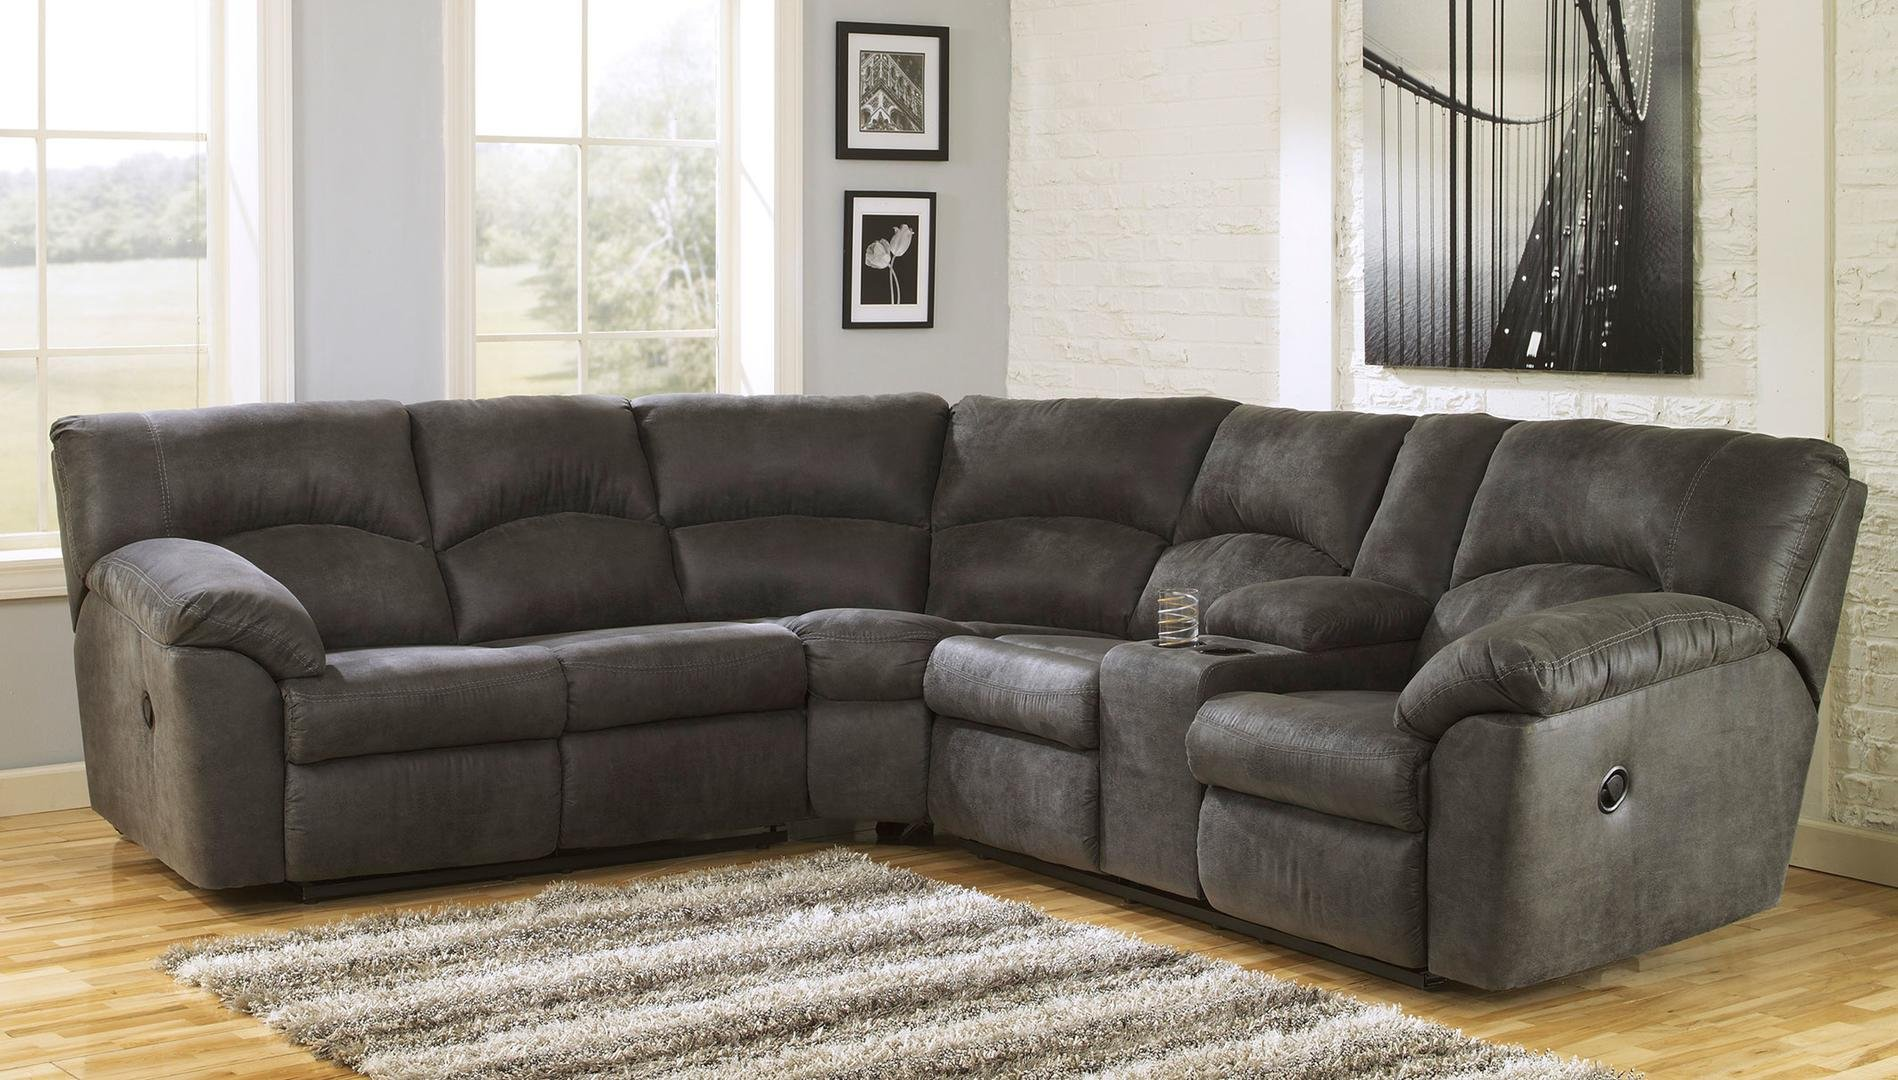 Signature Design by Ashley Tambo Reclining Sectional in Pewter by Ashley Furniture